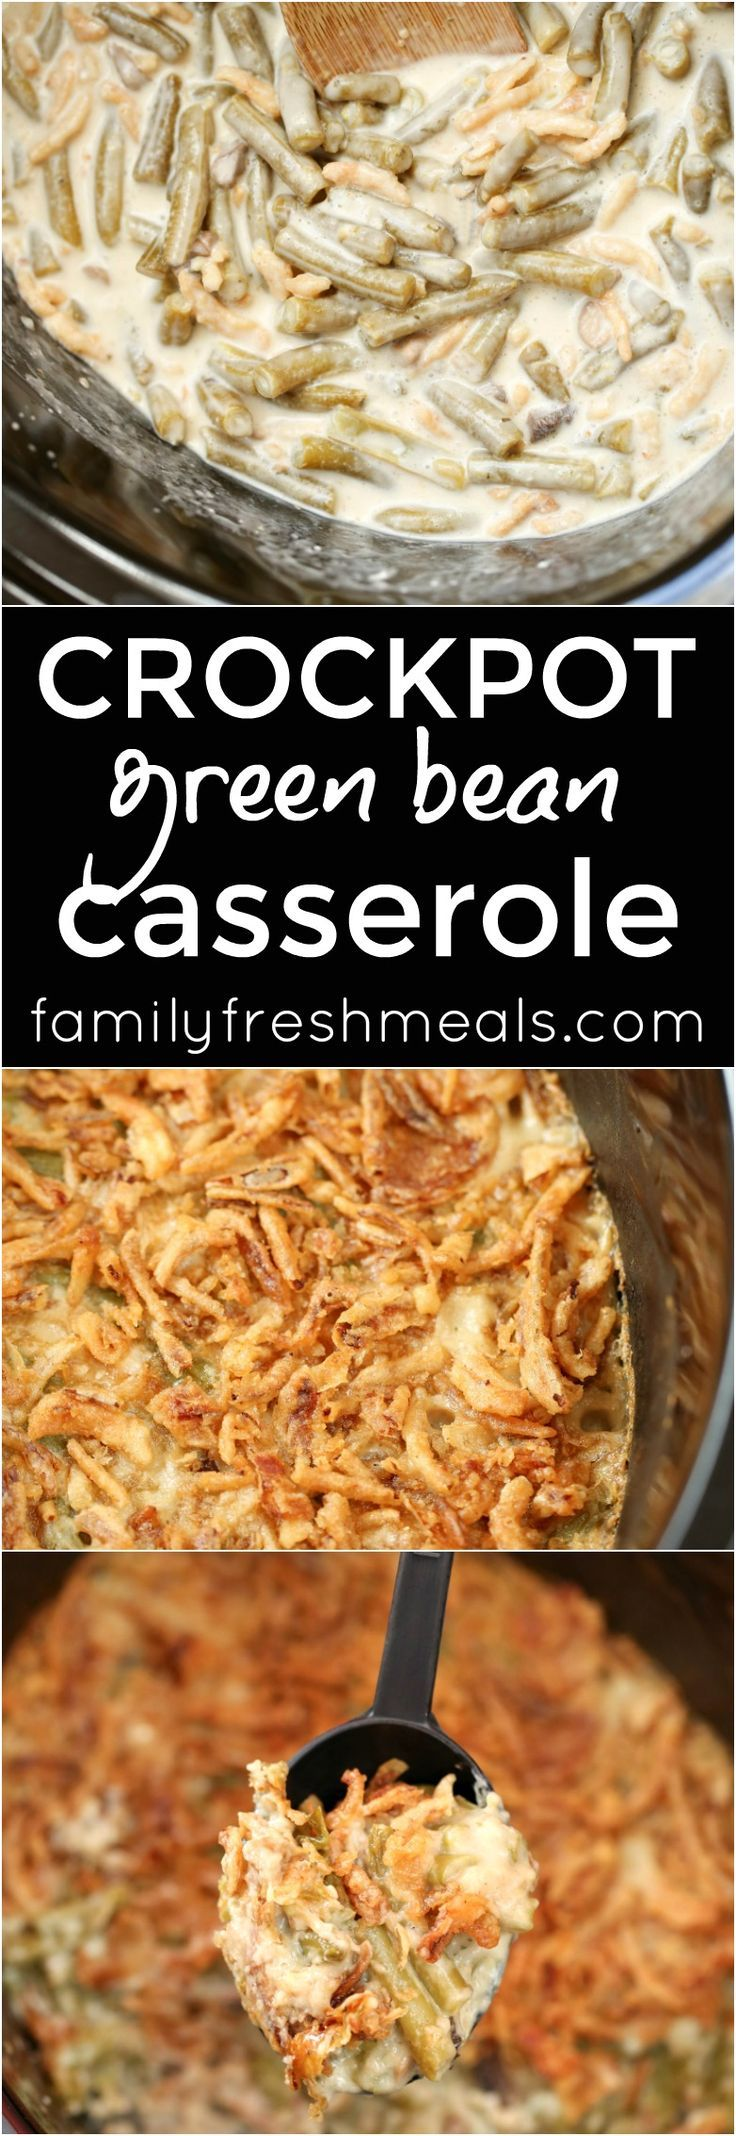 Crockpot Green Bean Casserole Recipe